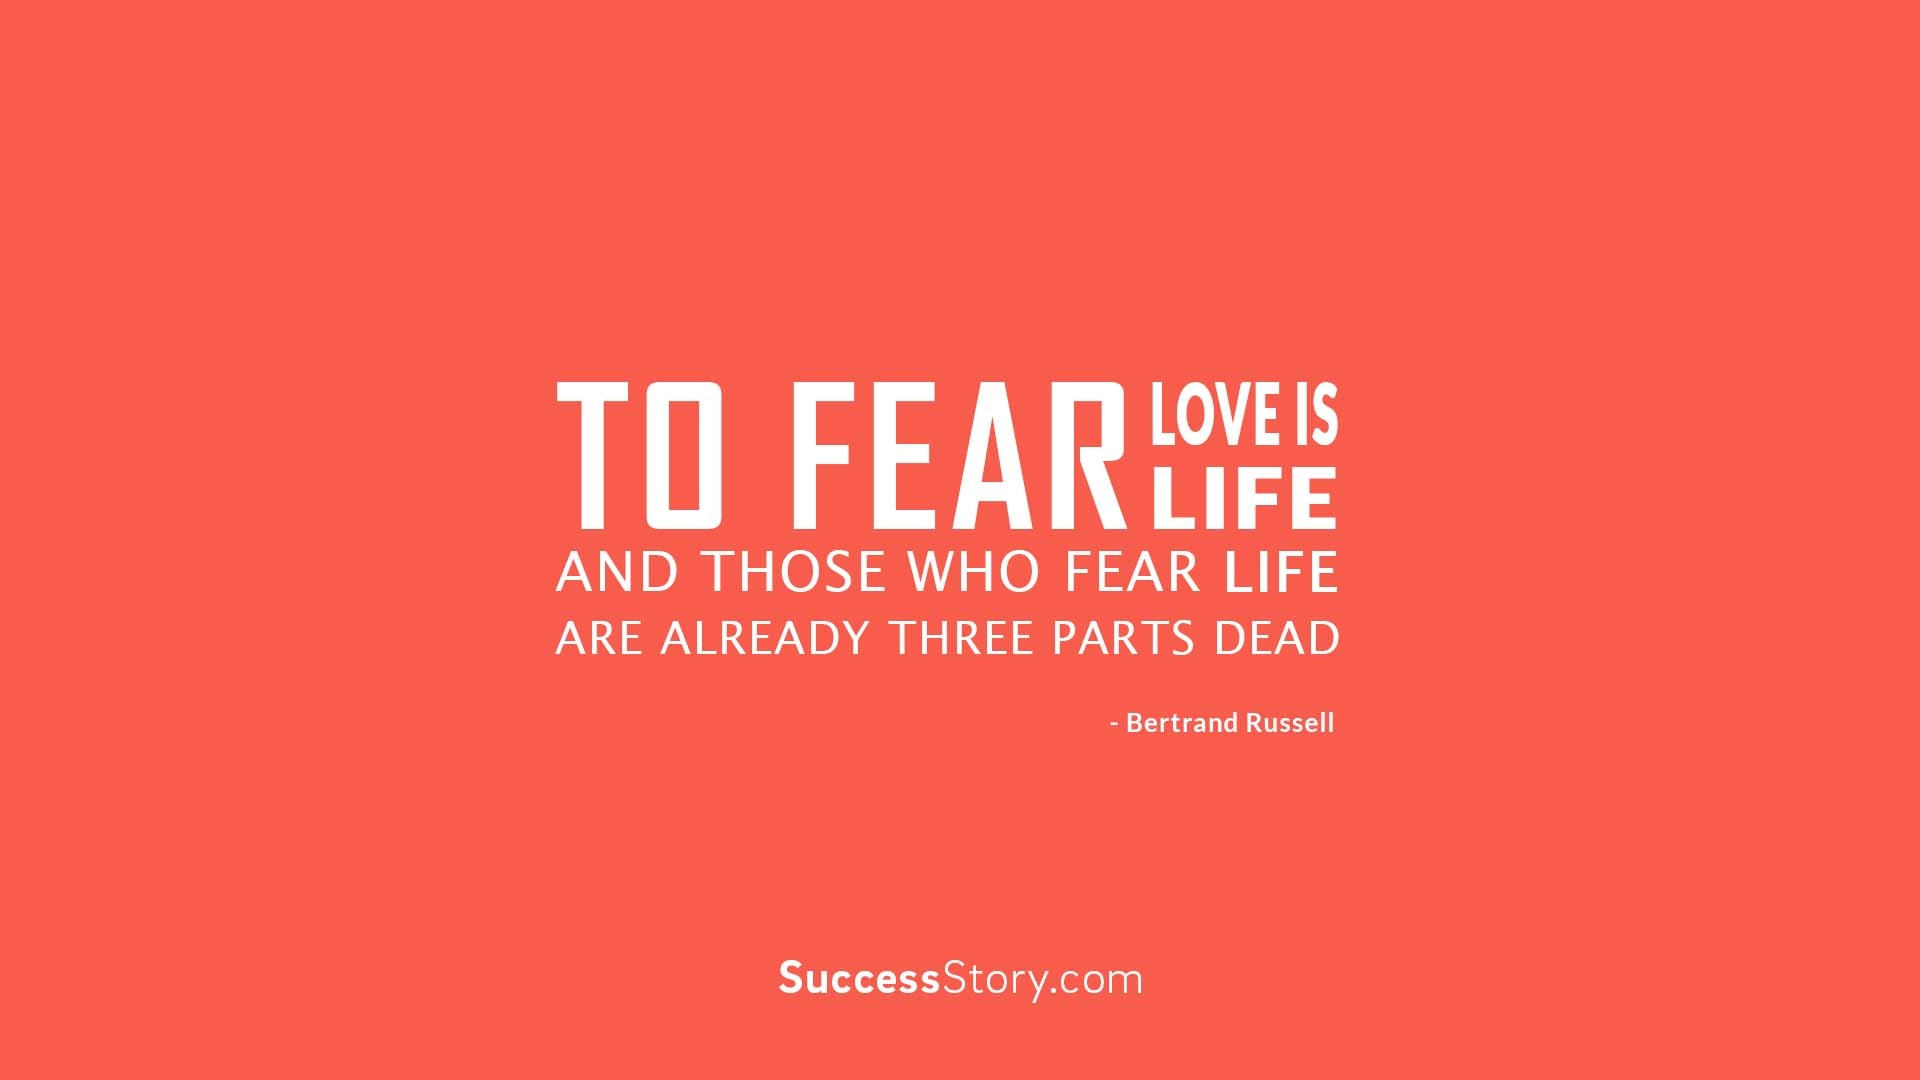 To fear love is to fear life,